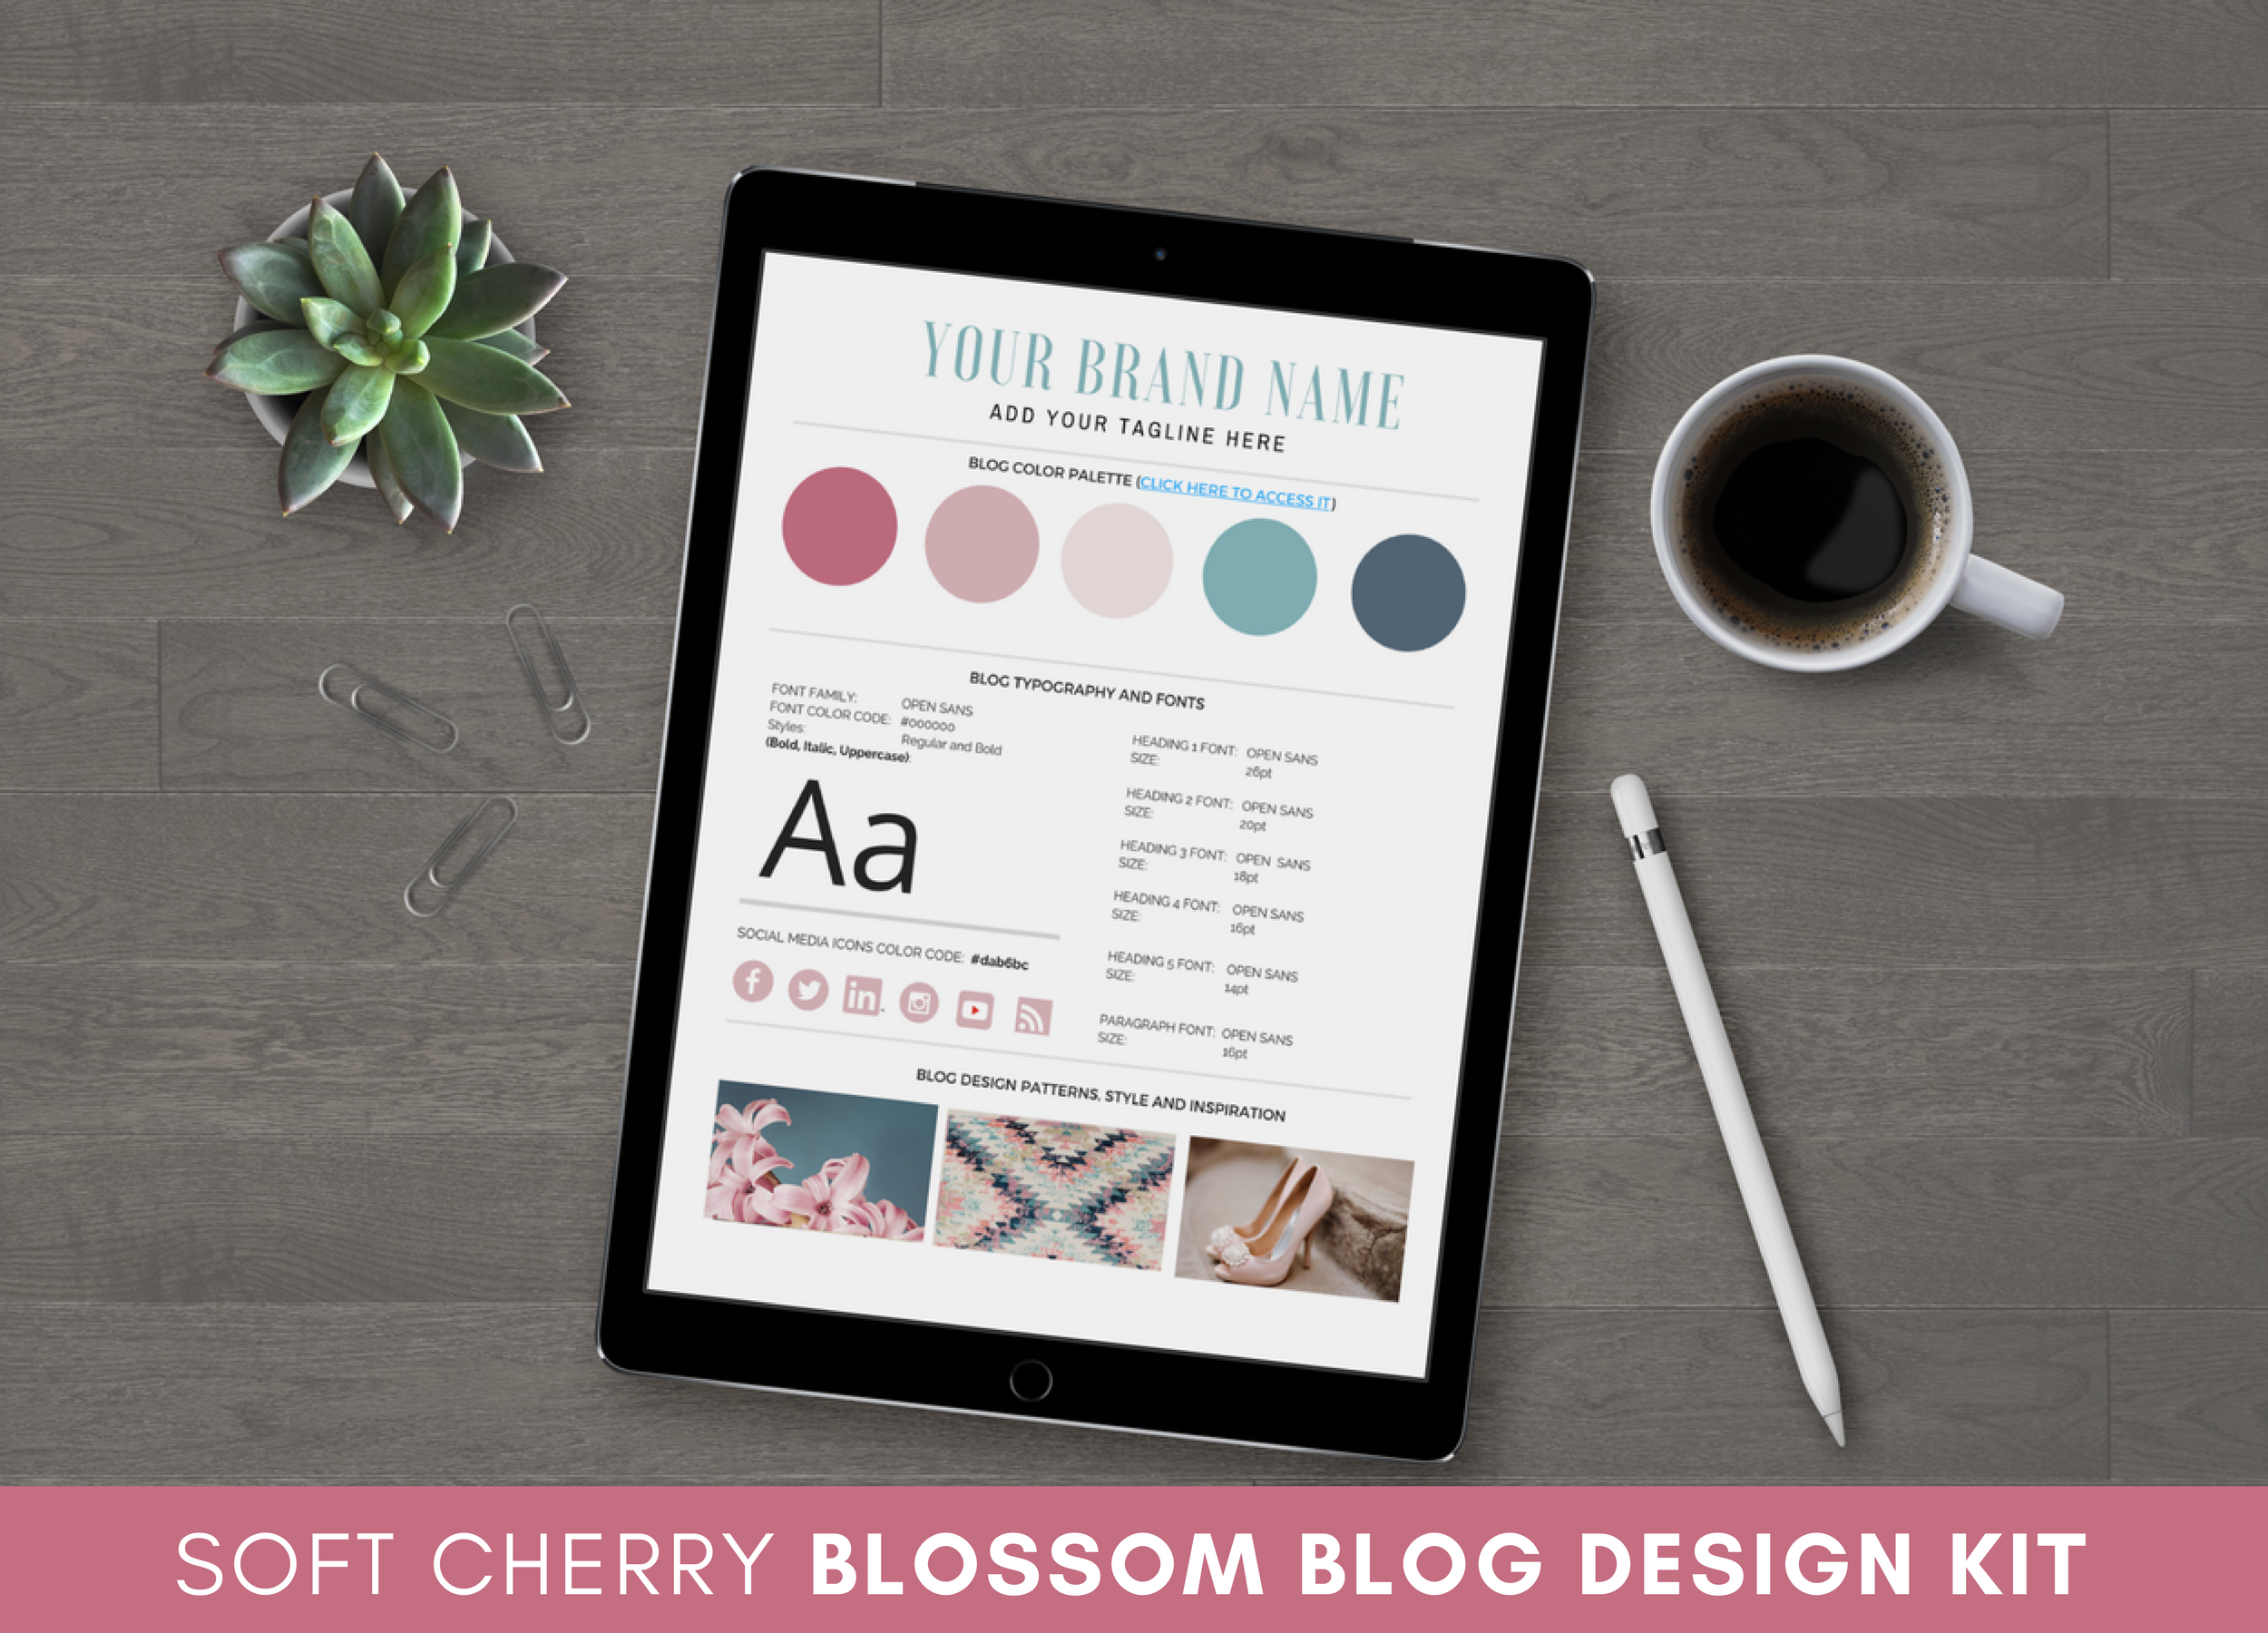 Soft Cherry Blossom Blog Design Kit